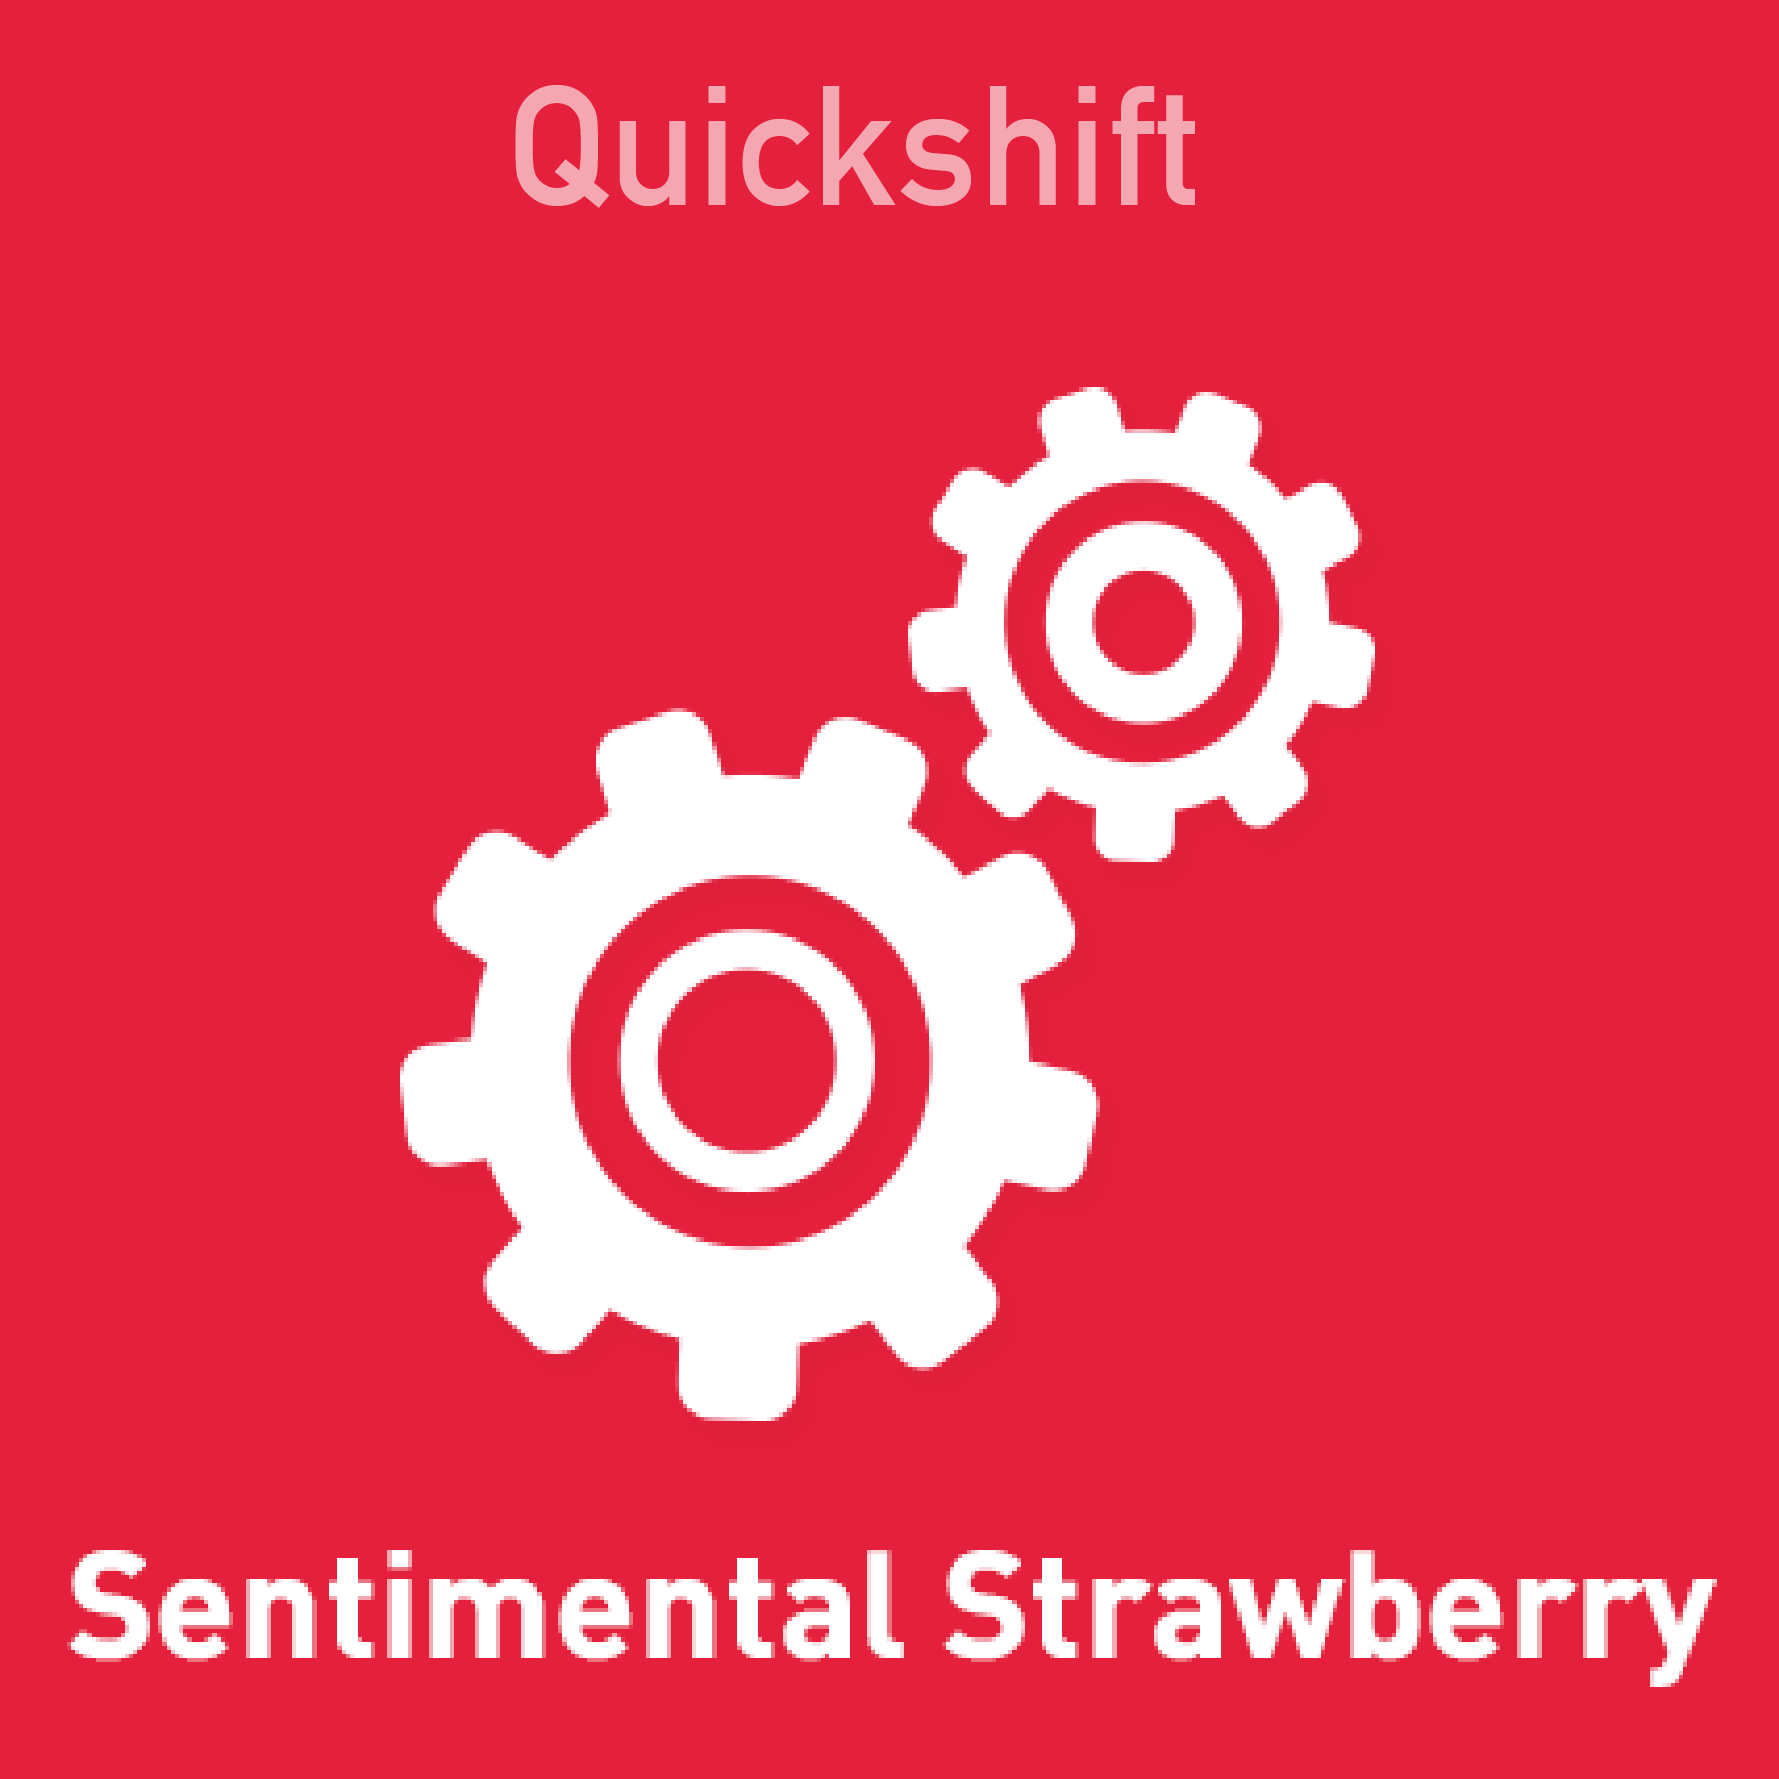 Quickshift - Sentimental Strawberry